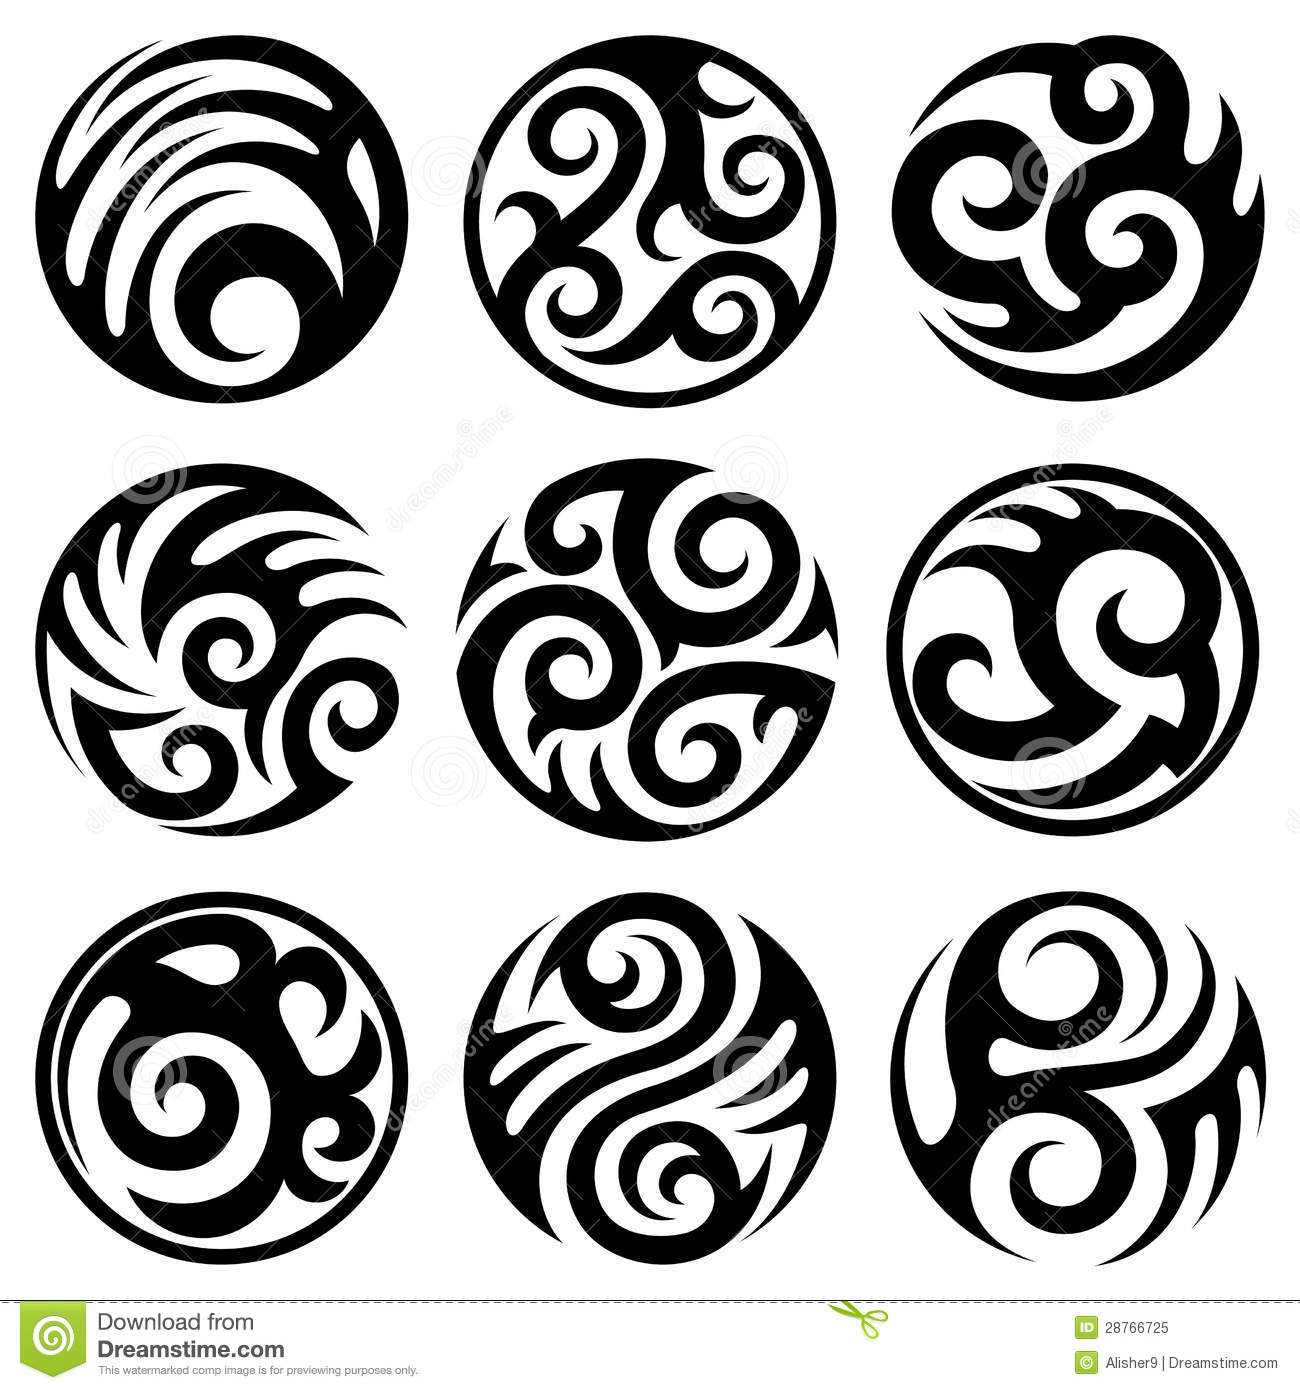 round tribal tattoos set stock illustrations 44 round tribal rh dreamstime com Indian Tribal Tattoos Indian Tribal Tattoos